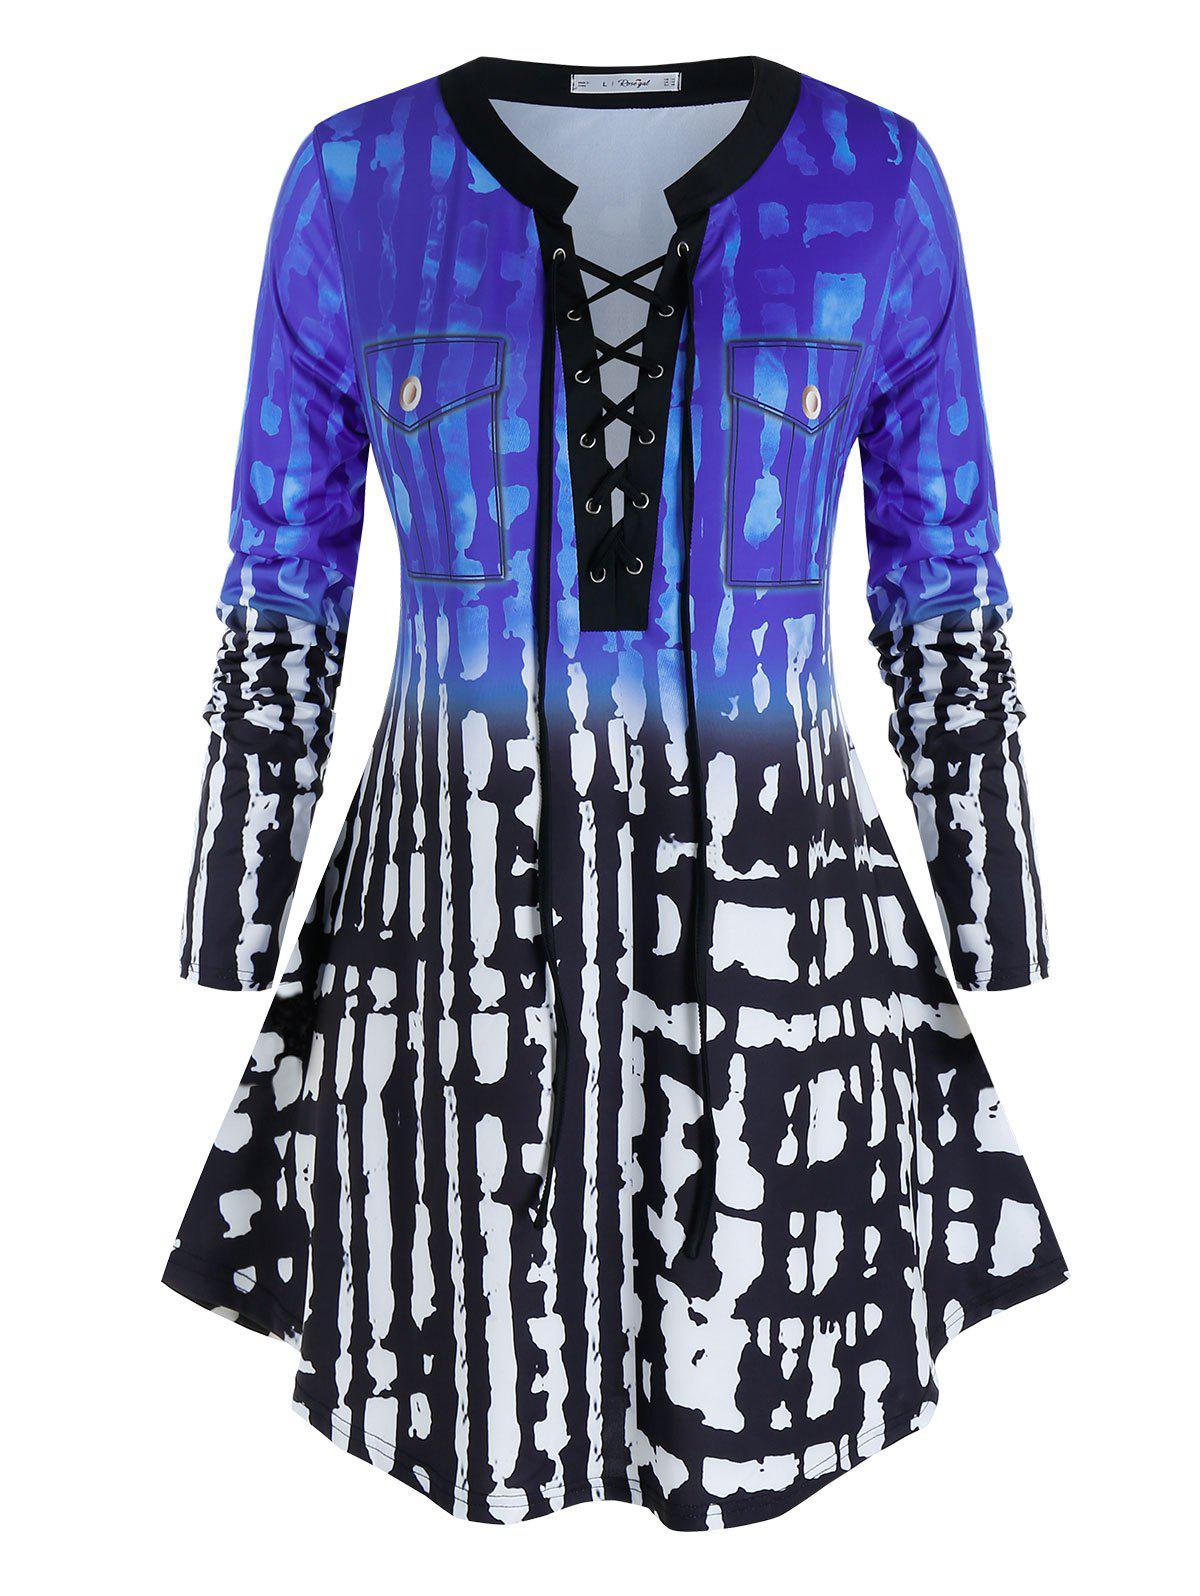 Plus Size Lace-up Pocket Printed Long Sleeve Top - DEEP BLUE 5X